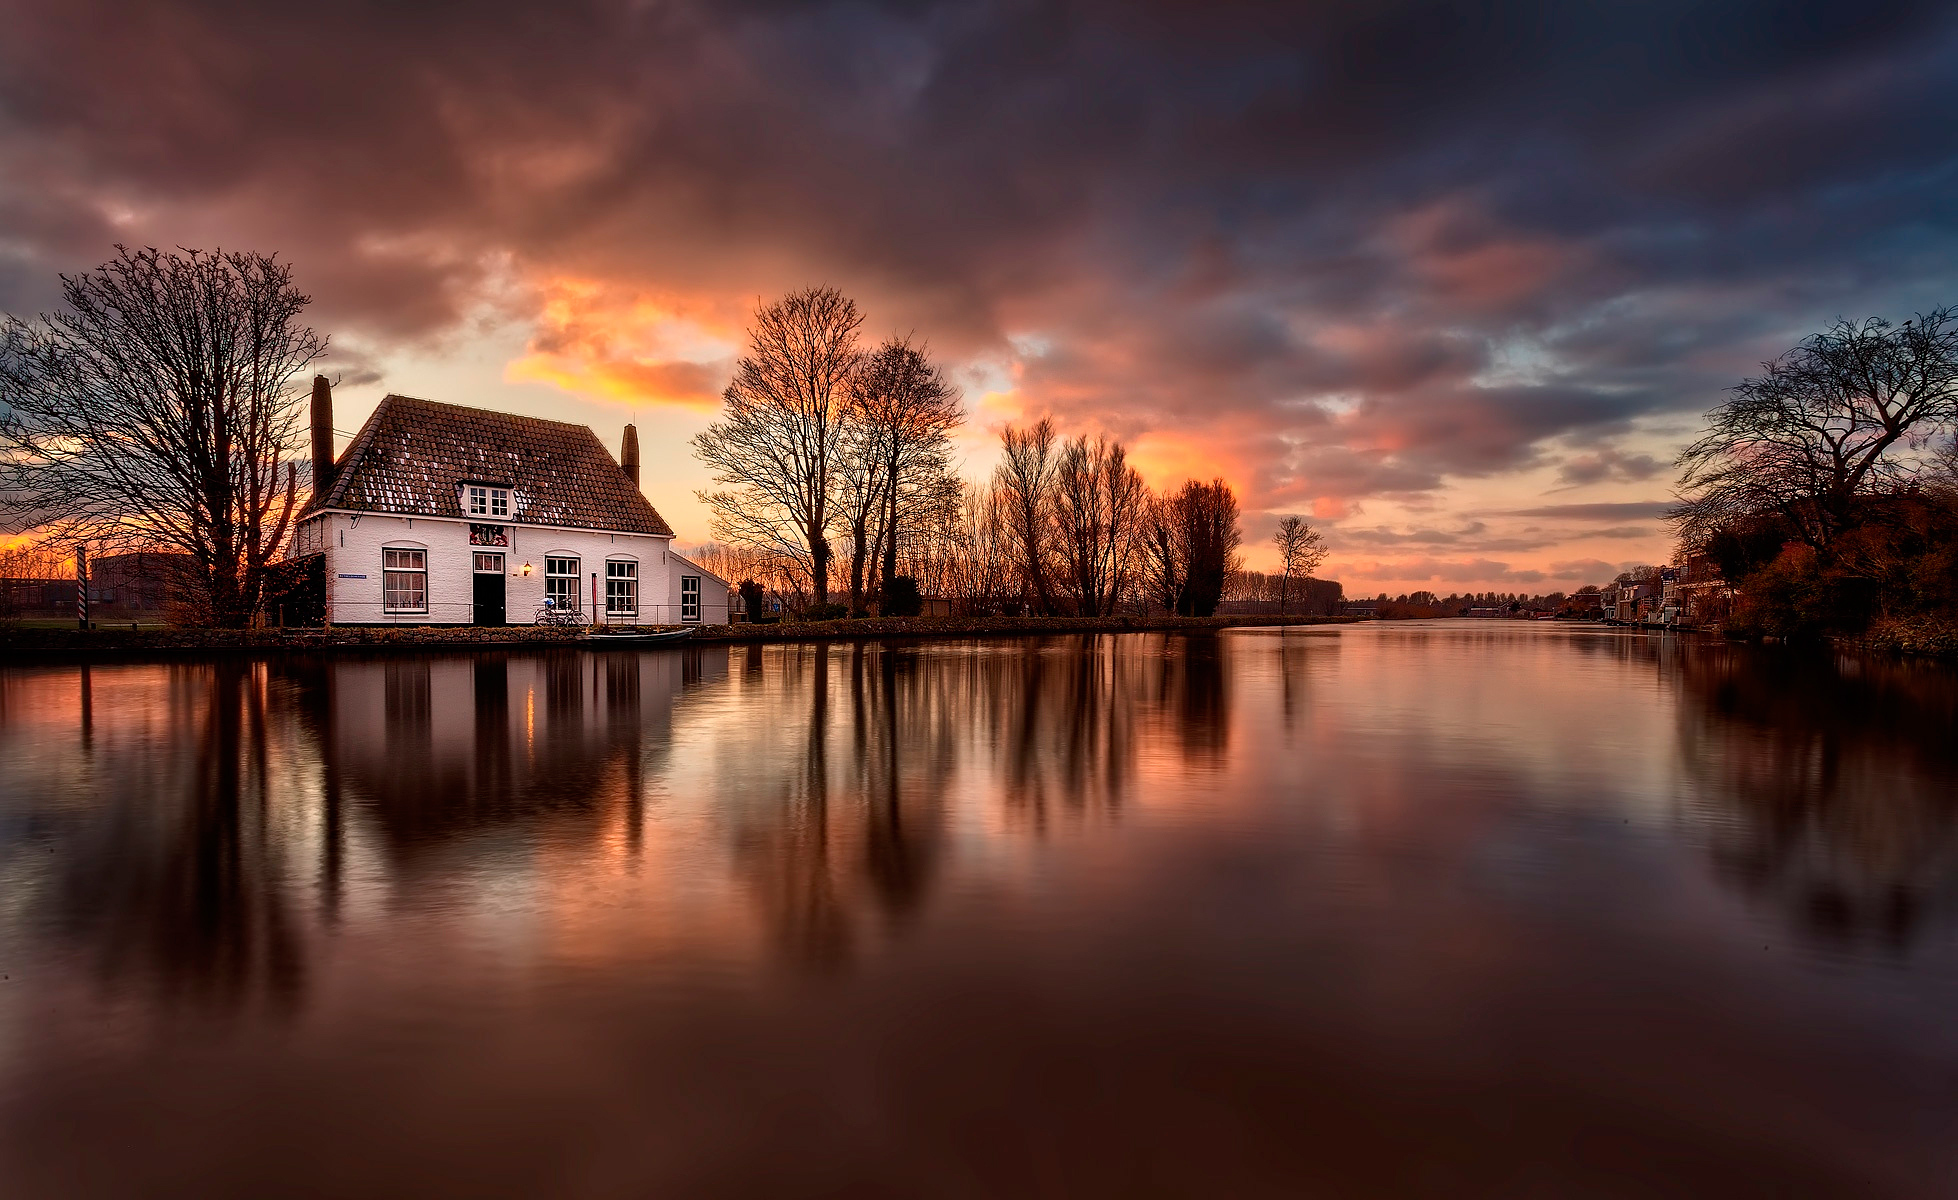 Haus am see wallpaper  Sunset over Town on the Water Full HD Wallpaper and Hintergrund ...